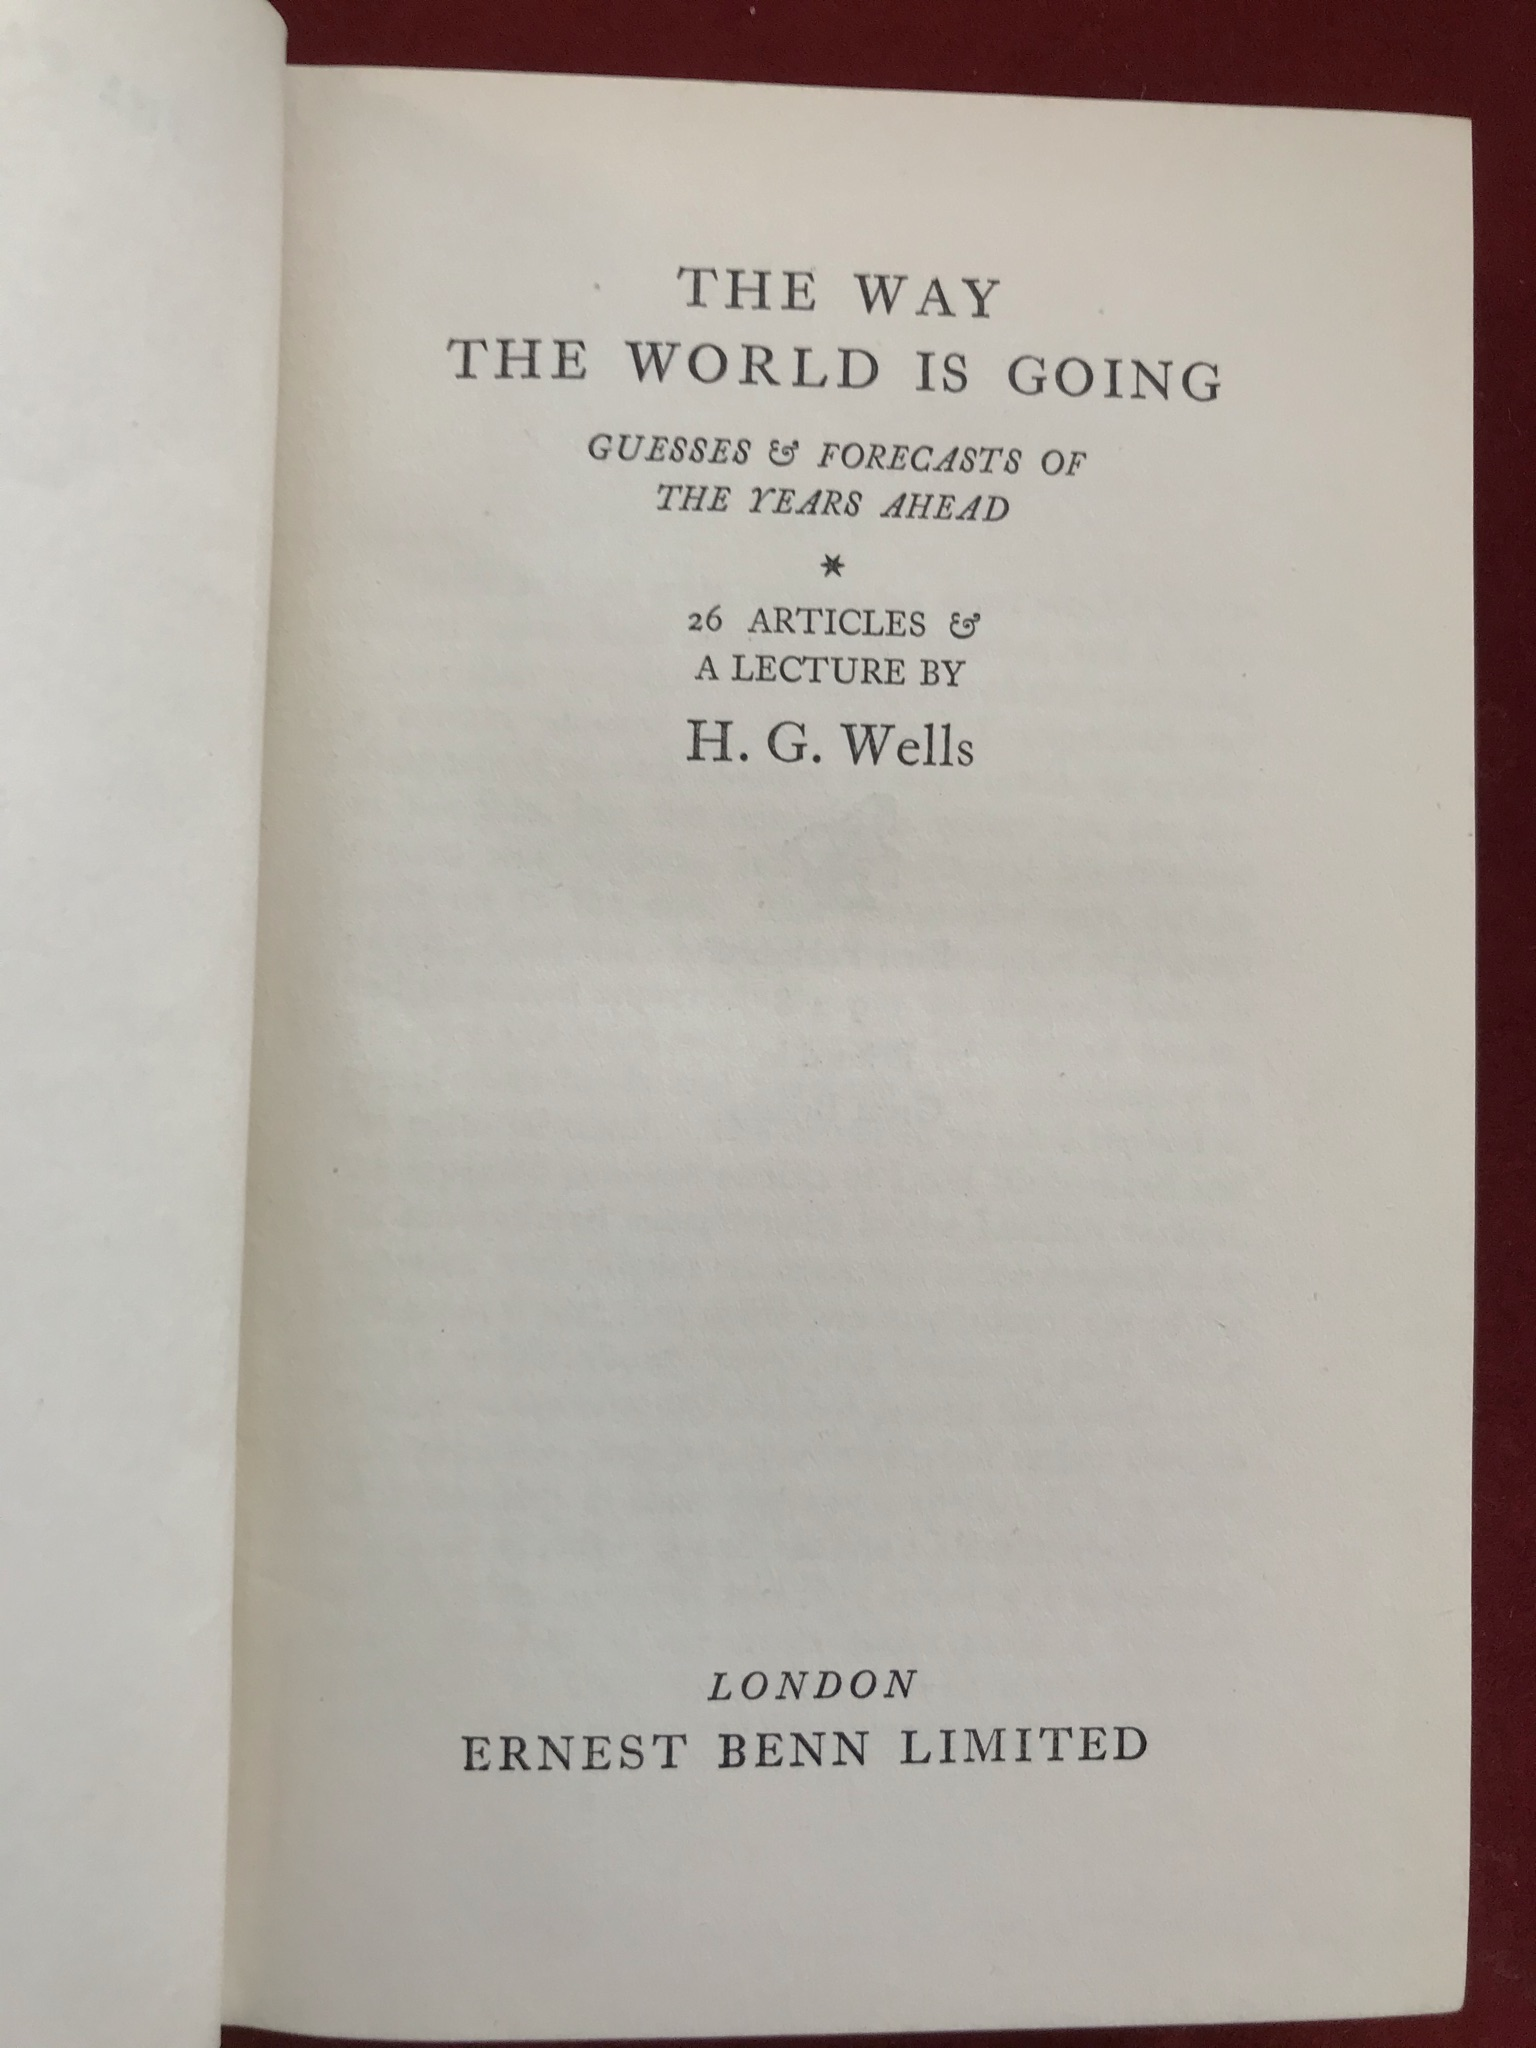 The Way the World is GoingFirst edition, 1928 - Image 2 of 3